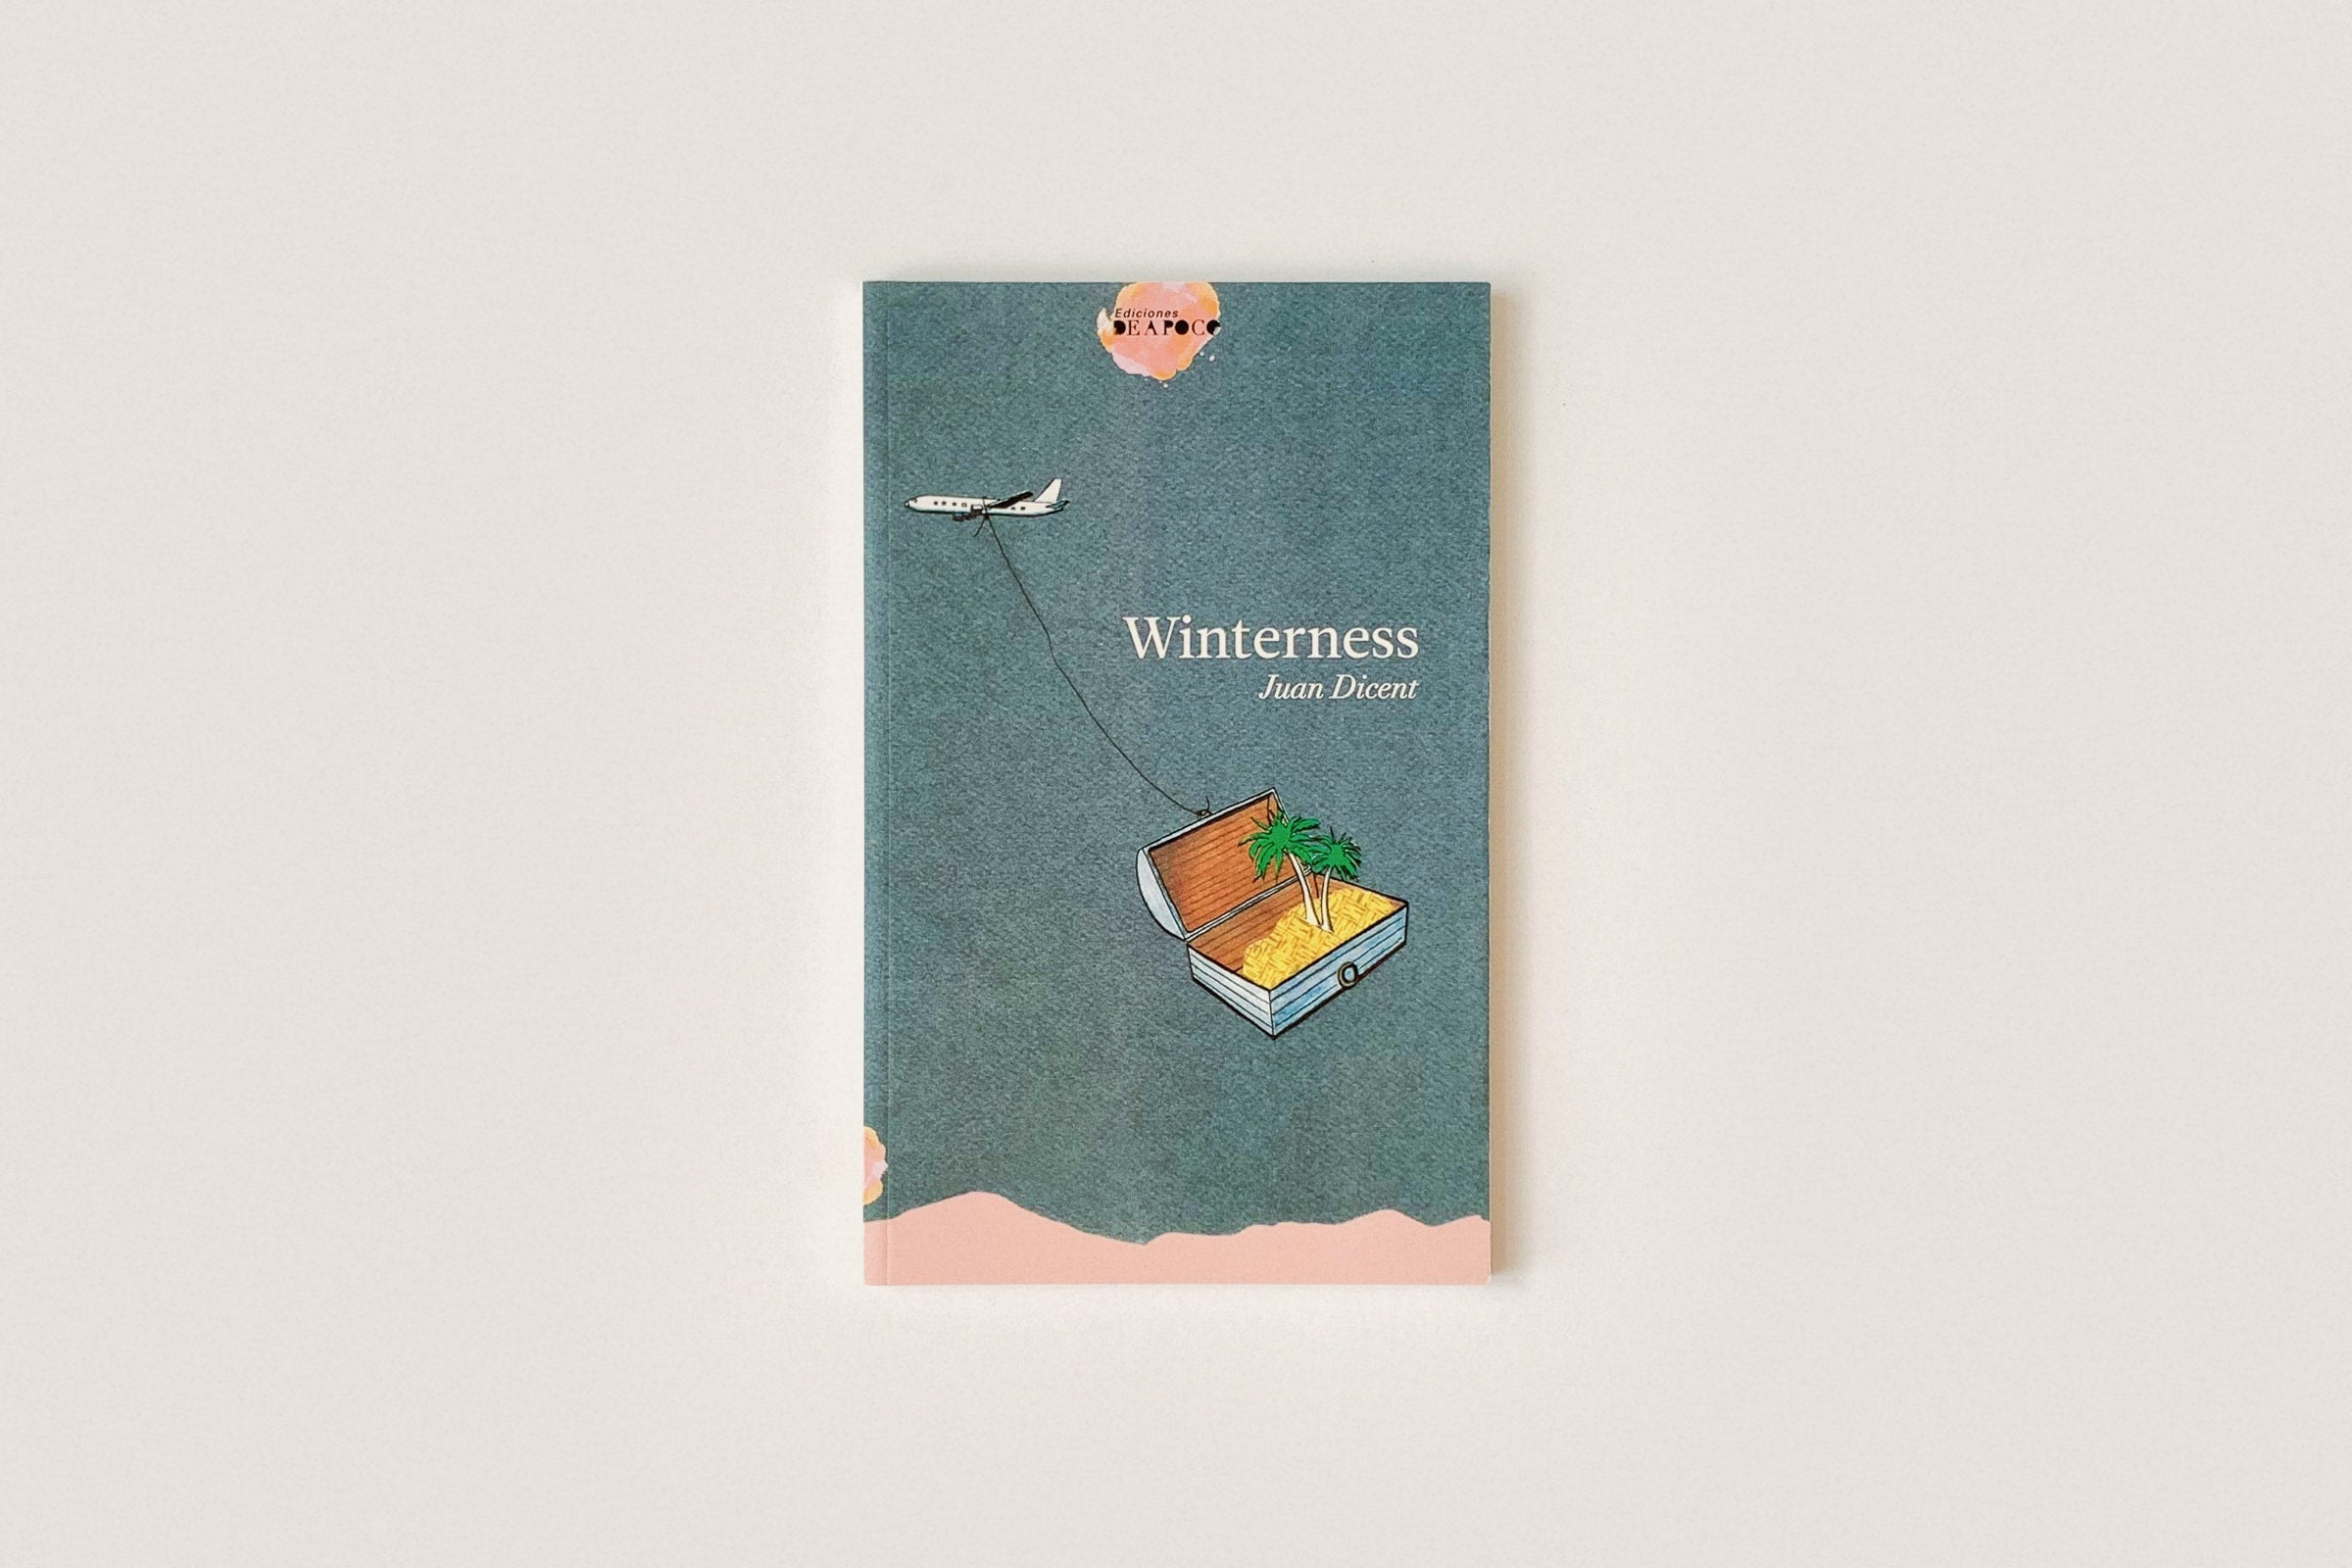 Libro: Winterness — Juan Dicent